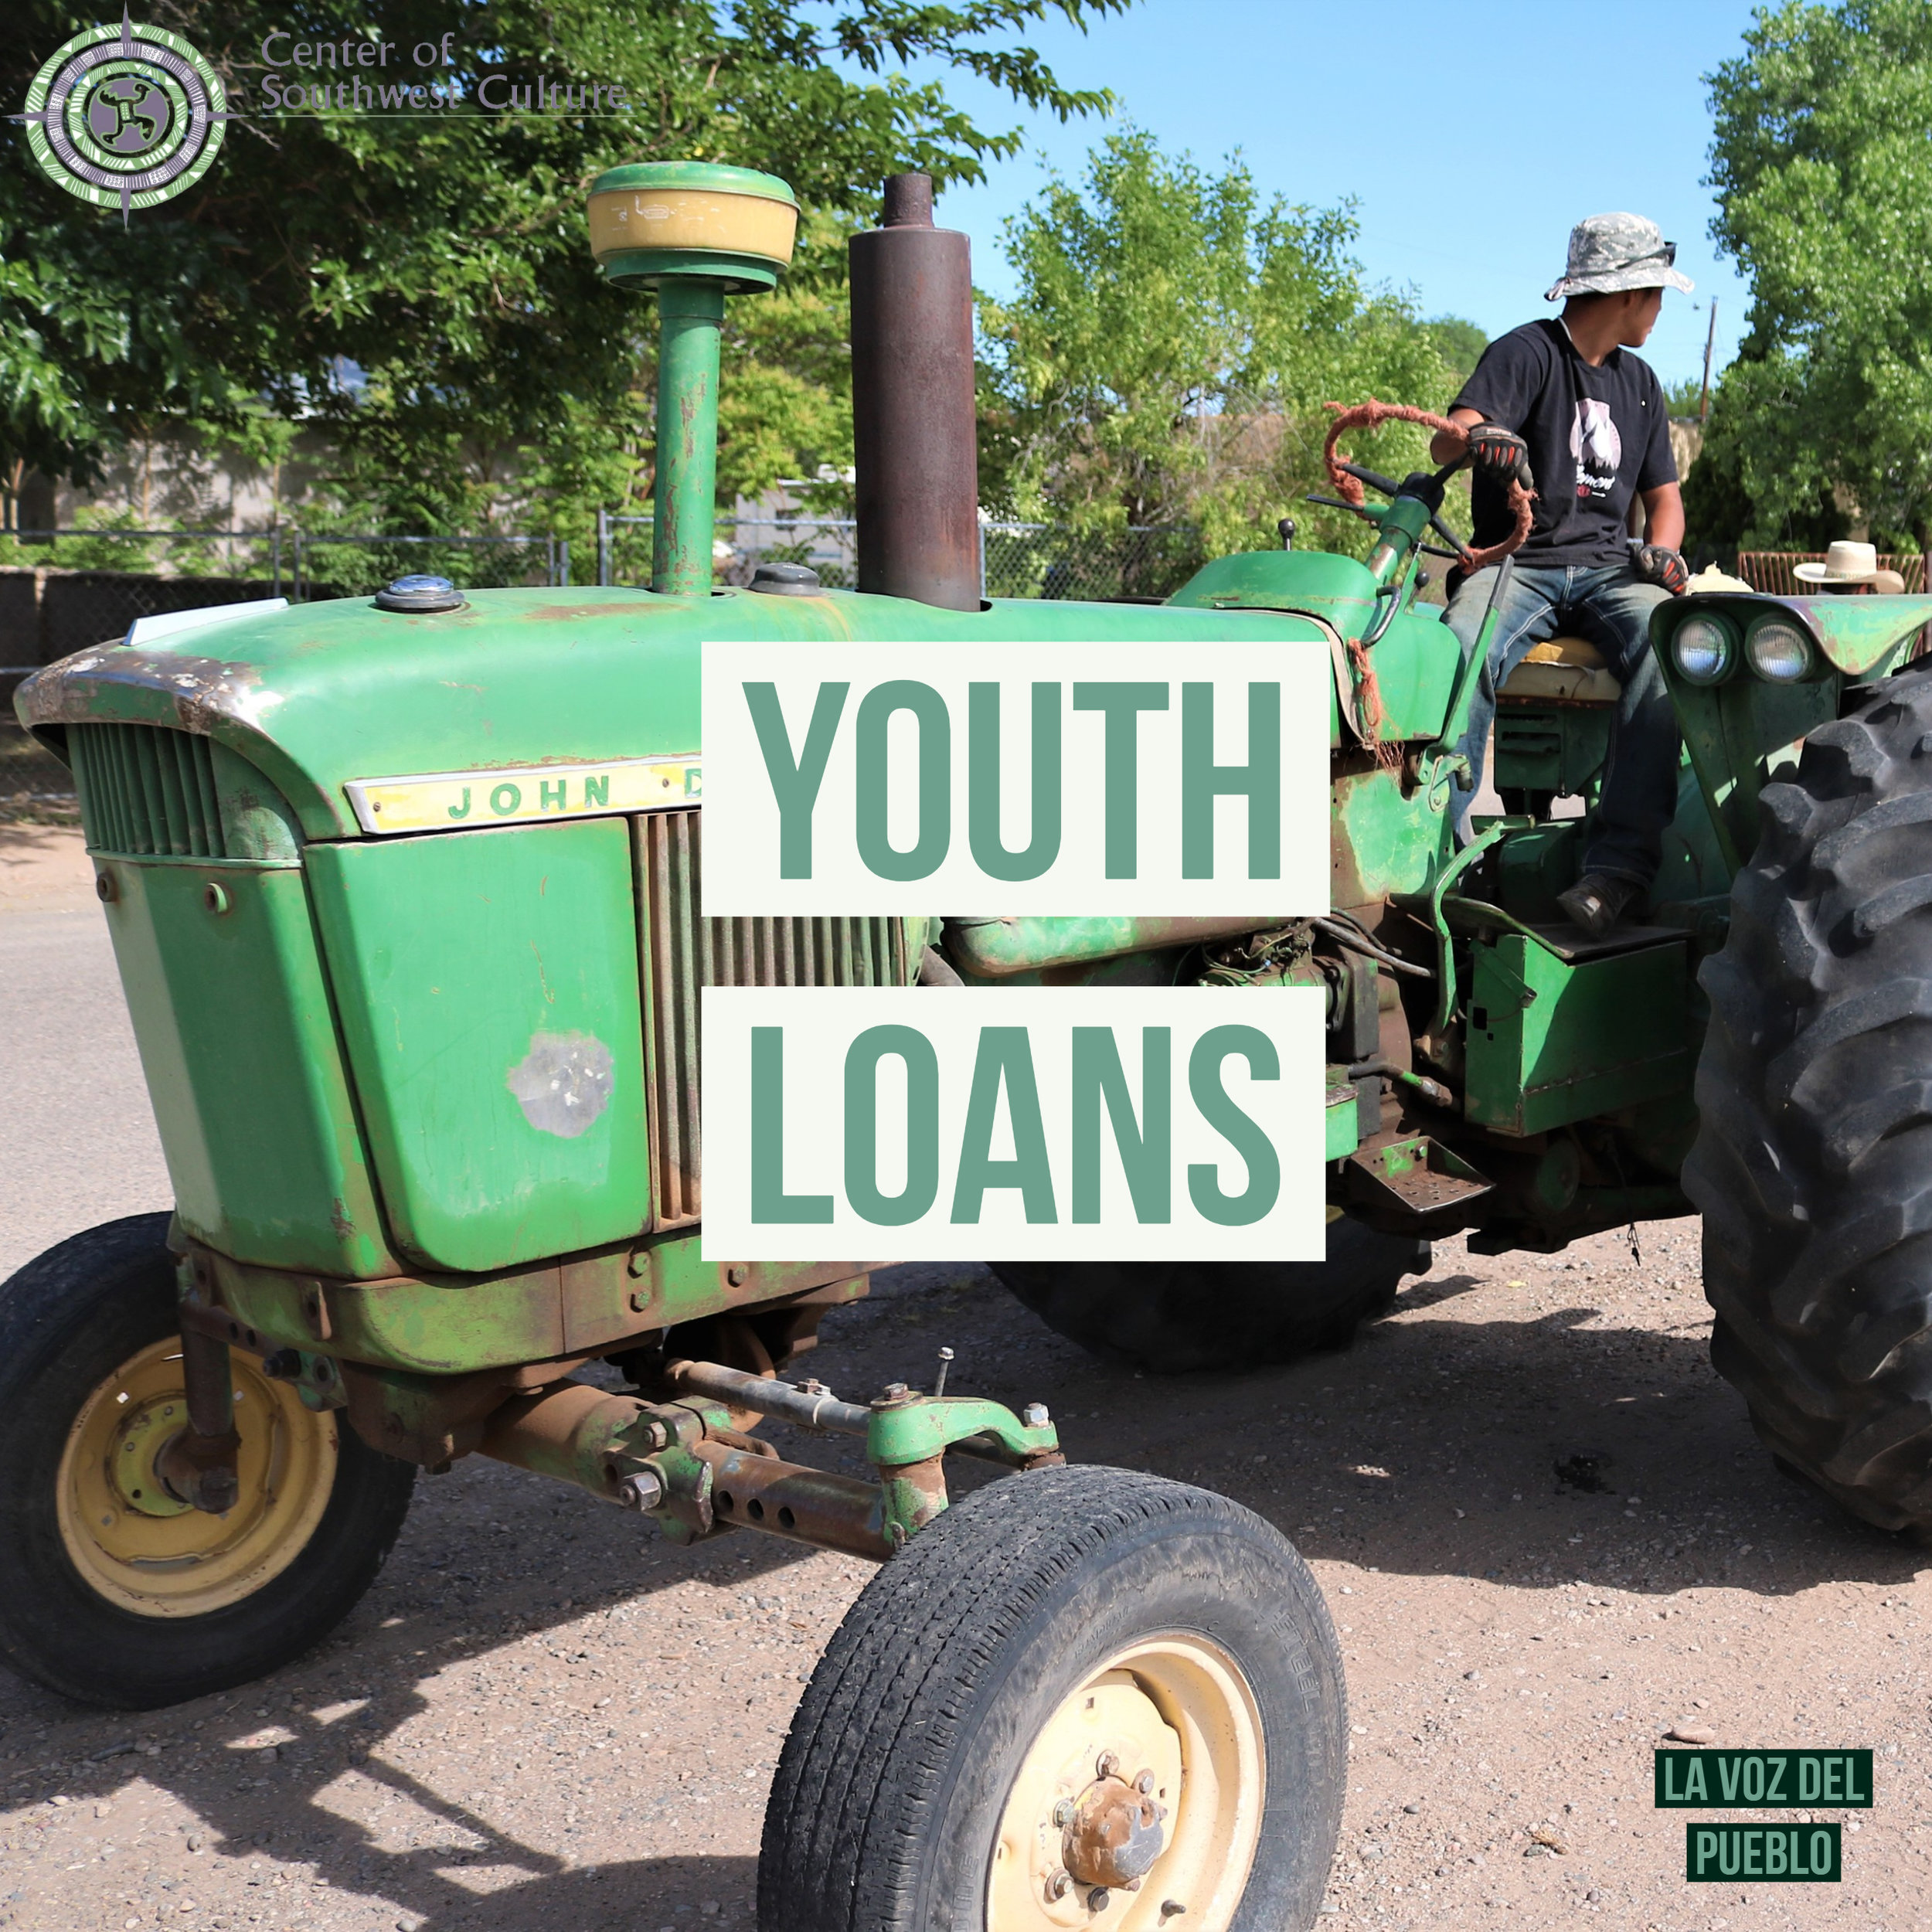 Young Loans - The FSA makes loans to individuals young persons to start and operate income-producing projects of modest size in connection with their participation in 4-H clubs, FFA, a Tribal youth group or similar agricultural youth organization. PDF information can be found here.